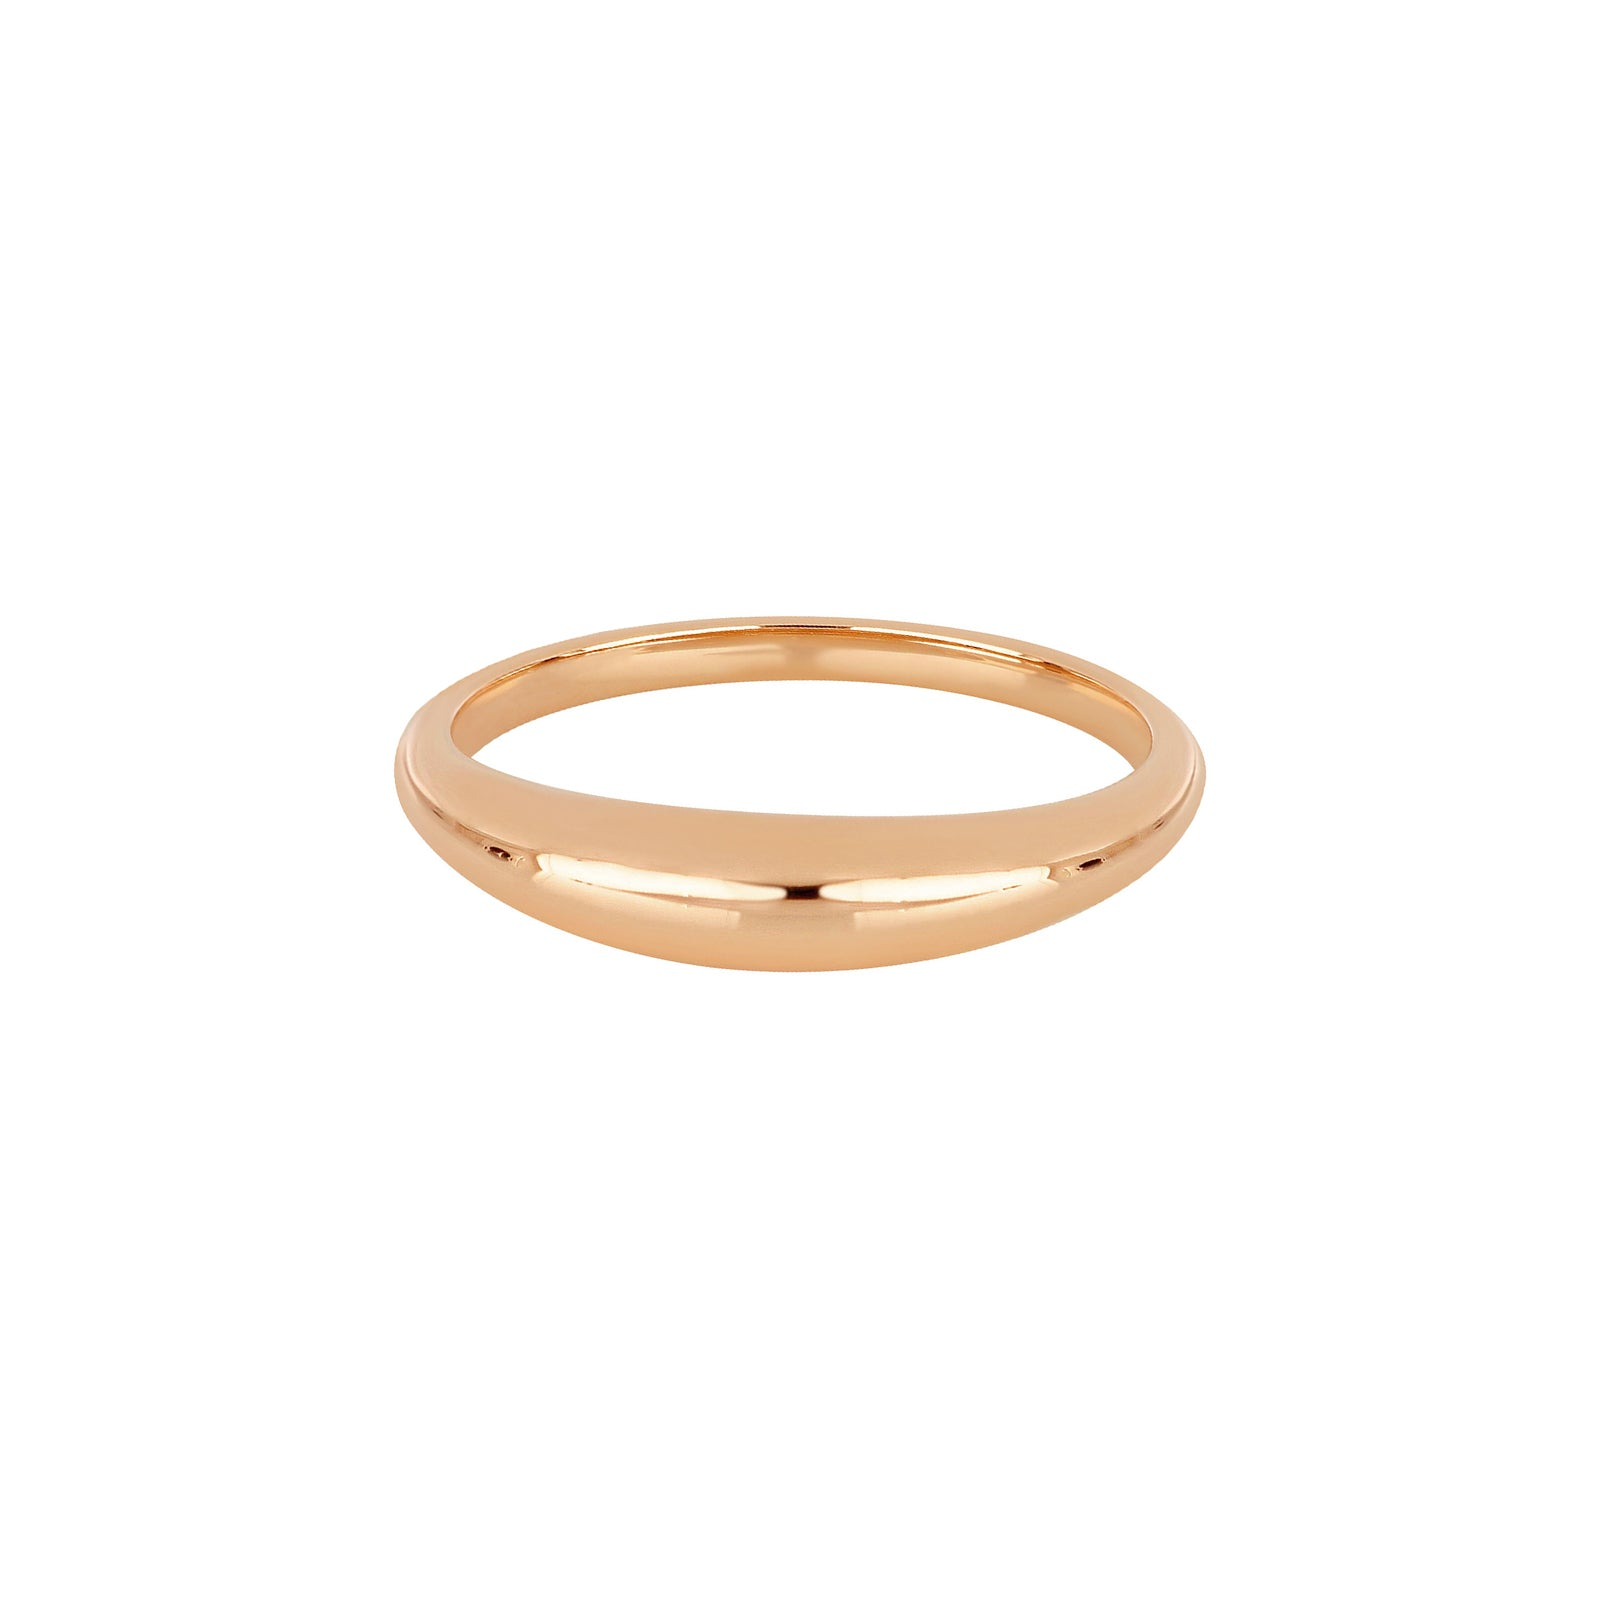 EF Collection Dome Ring - Rose Gold - Rings - Broken English Jewelry